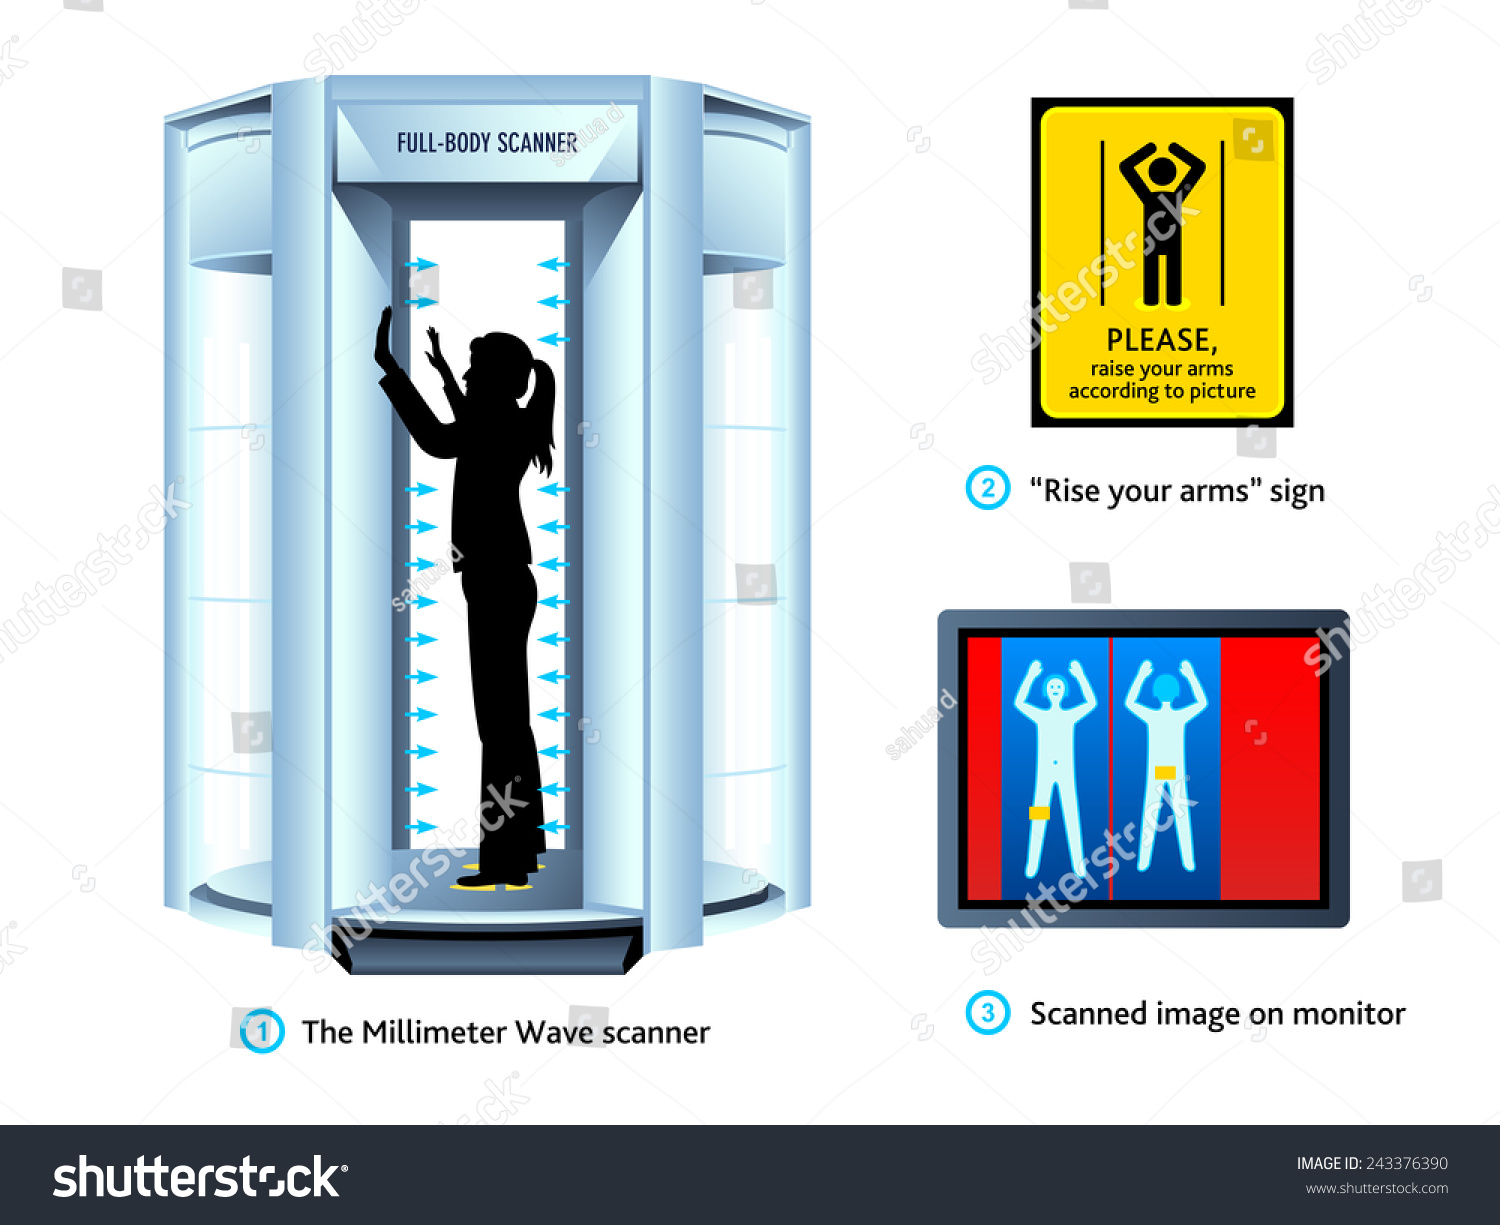 Airport body scan pictures images Security Screening Transportation Security Administration